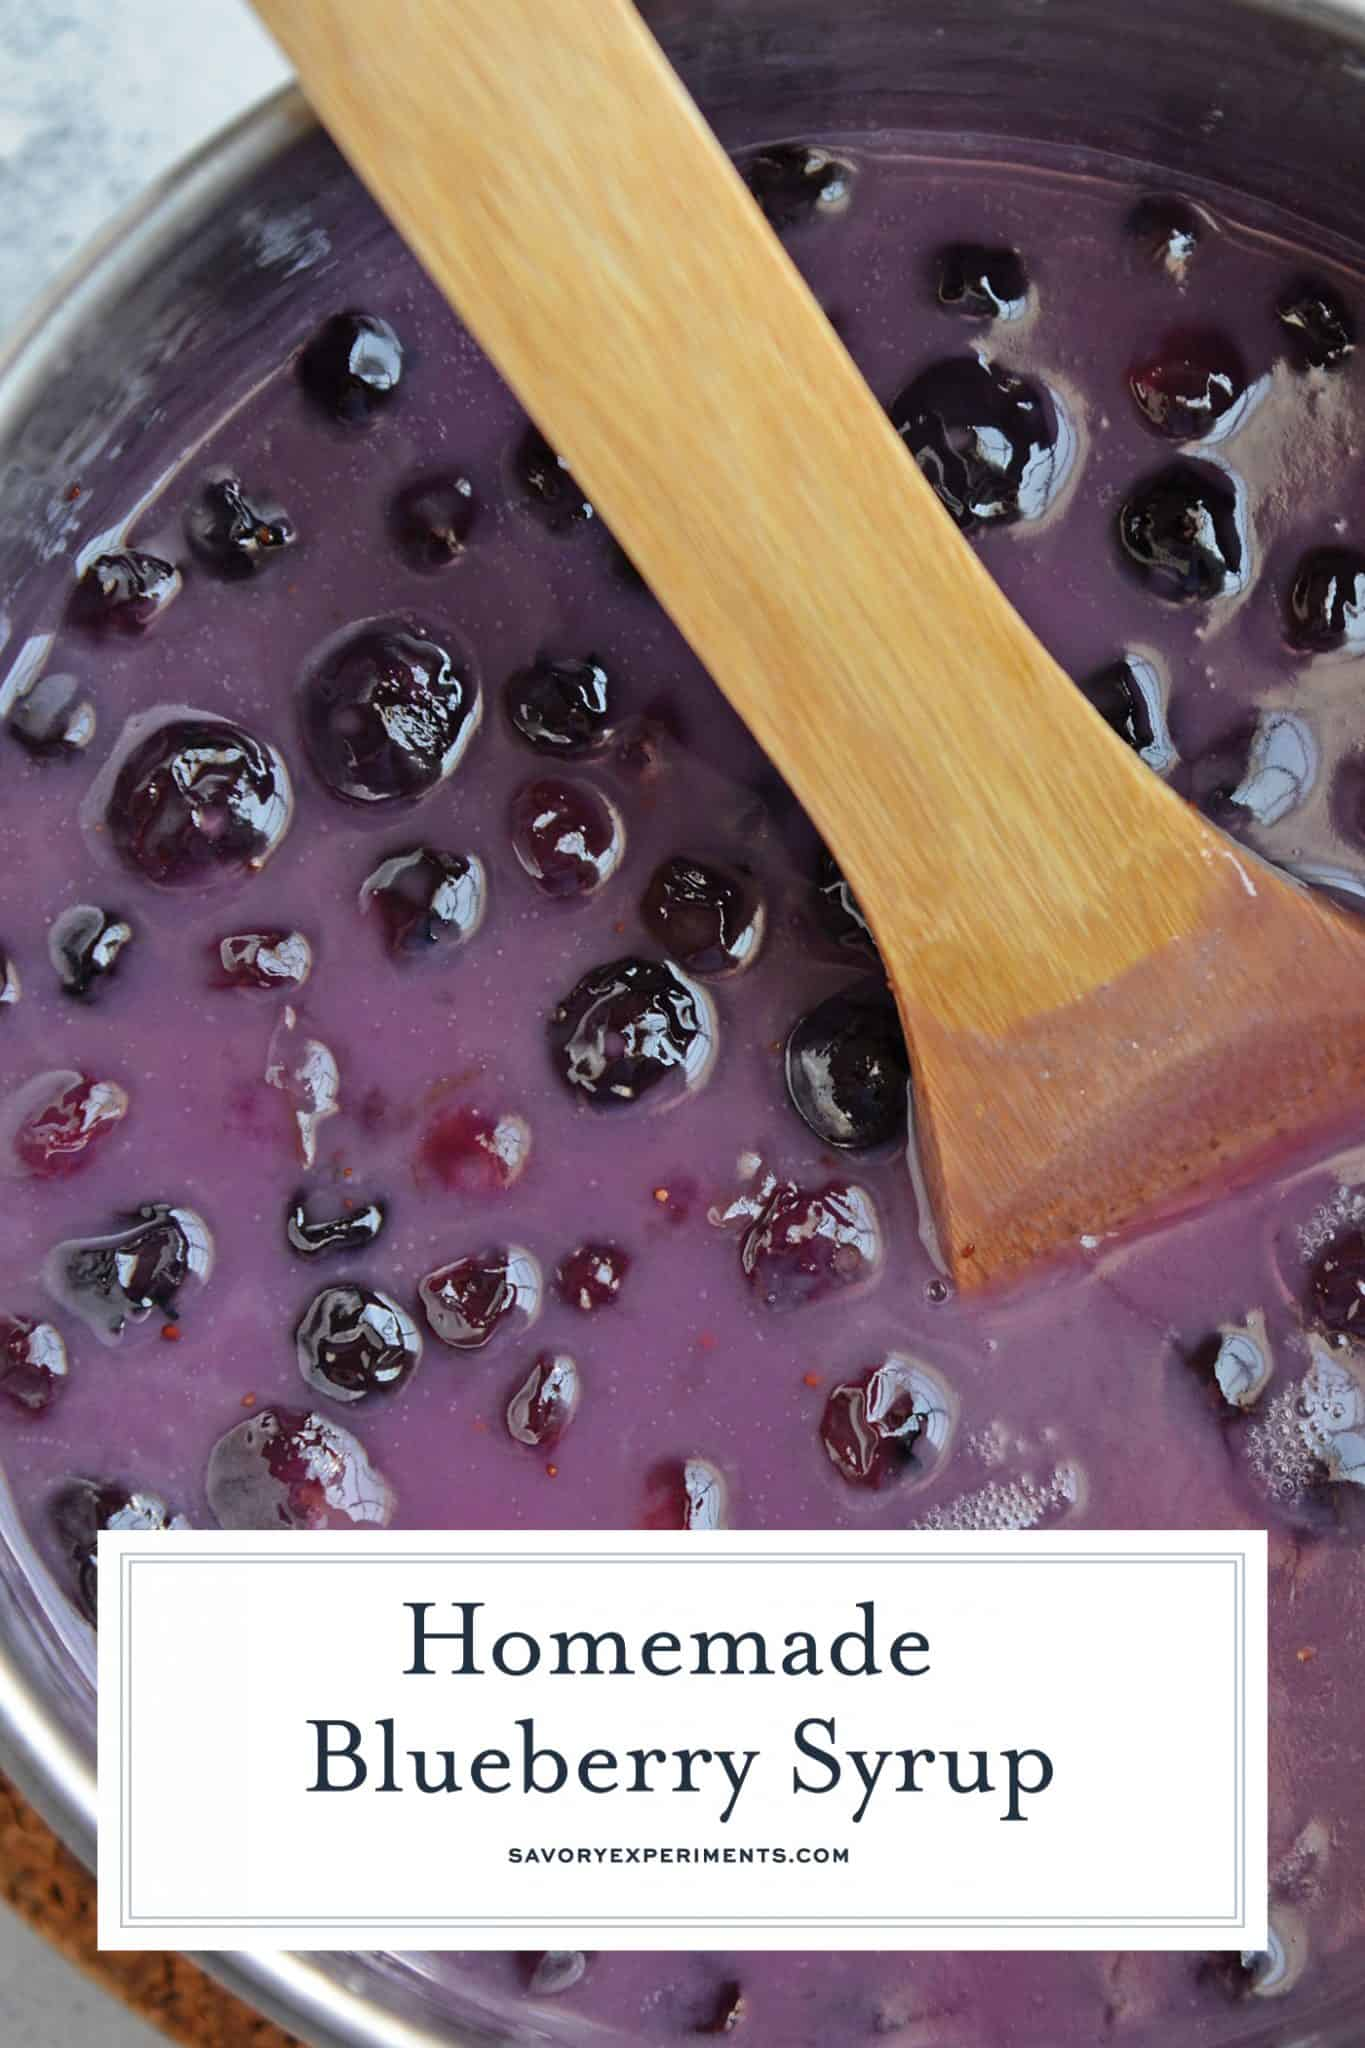 Homemade Blueberry Syrup is the perfect quick blueberry pancake syrup for pancakes and waffles. Uses a blueberry compote and comes together in 30 minutes! #blueberrysyrup #blueberrypancakesyrup www.savoryexperiments.com